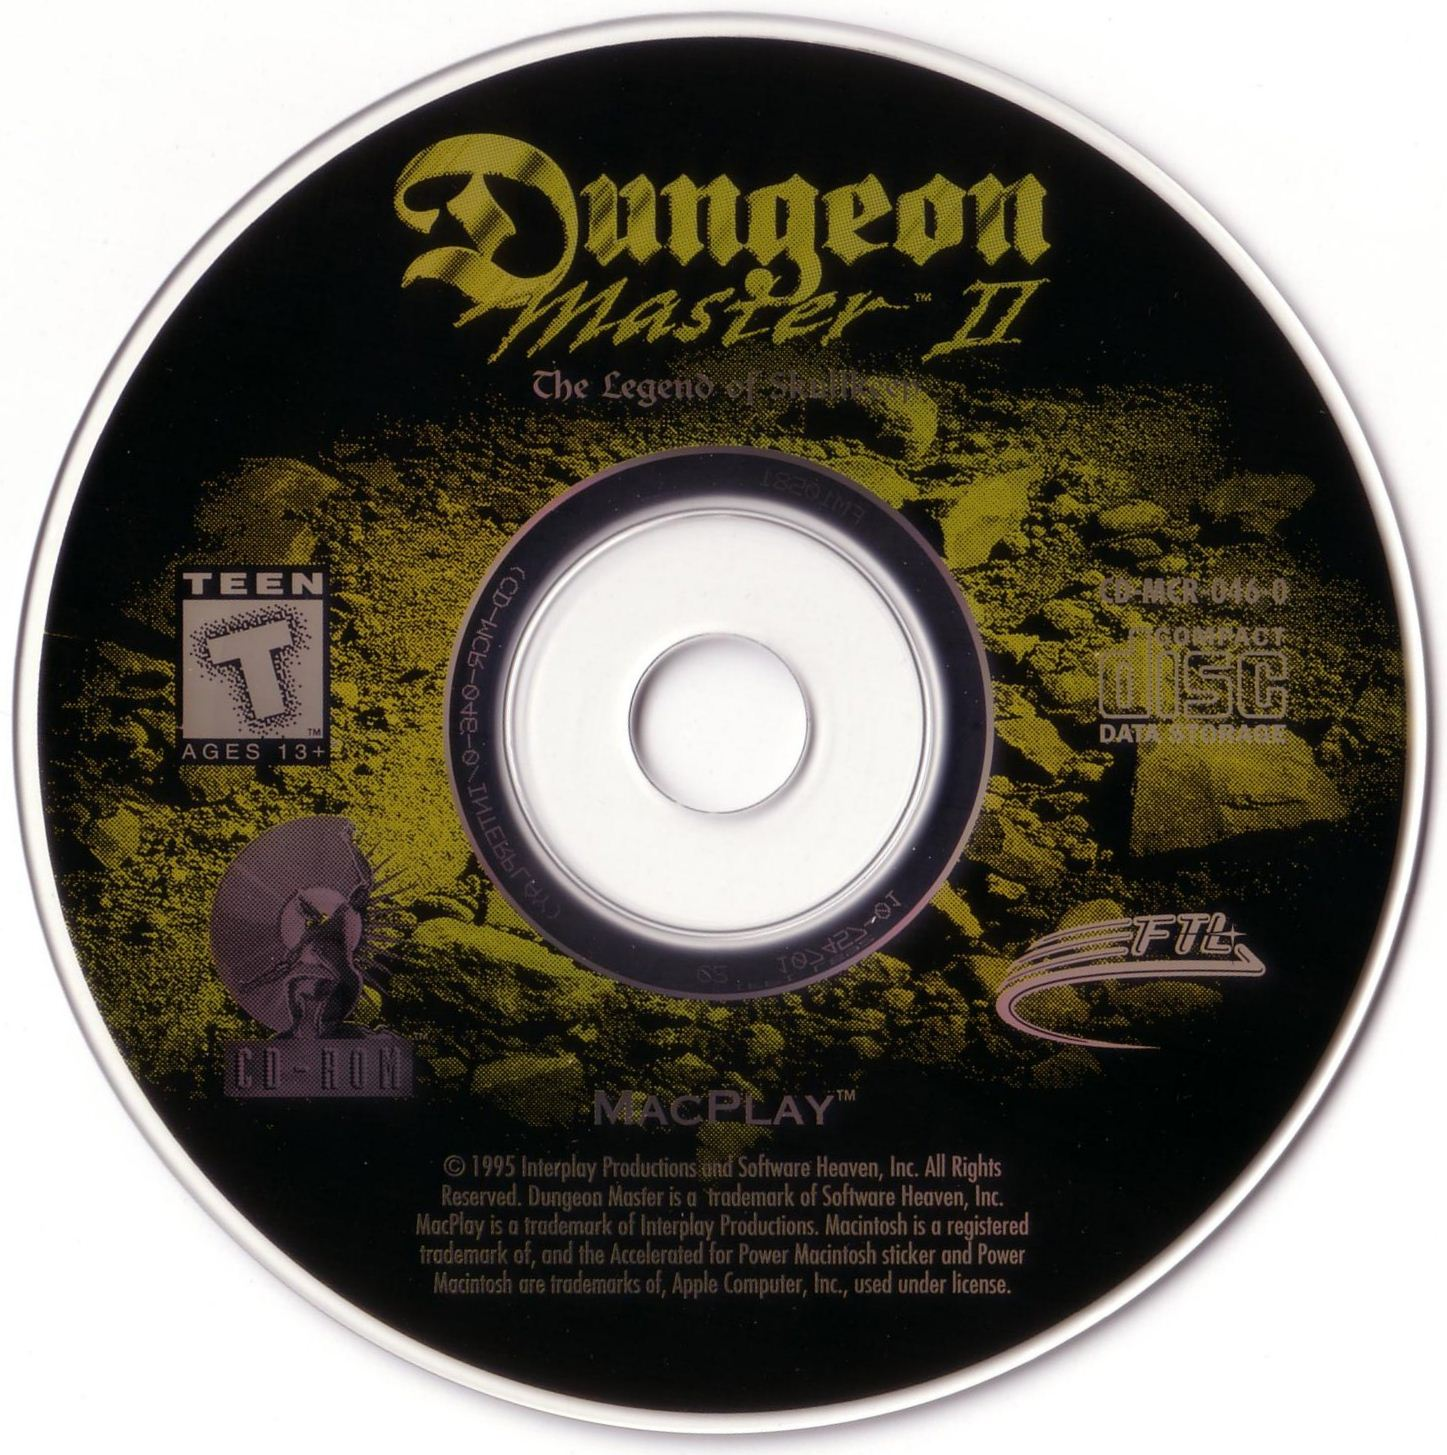 Game - Dungeon Master II - US - Macintosh - Compact Disc - Front - Scan